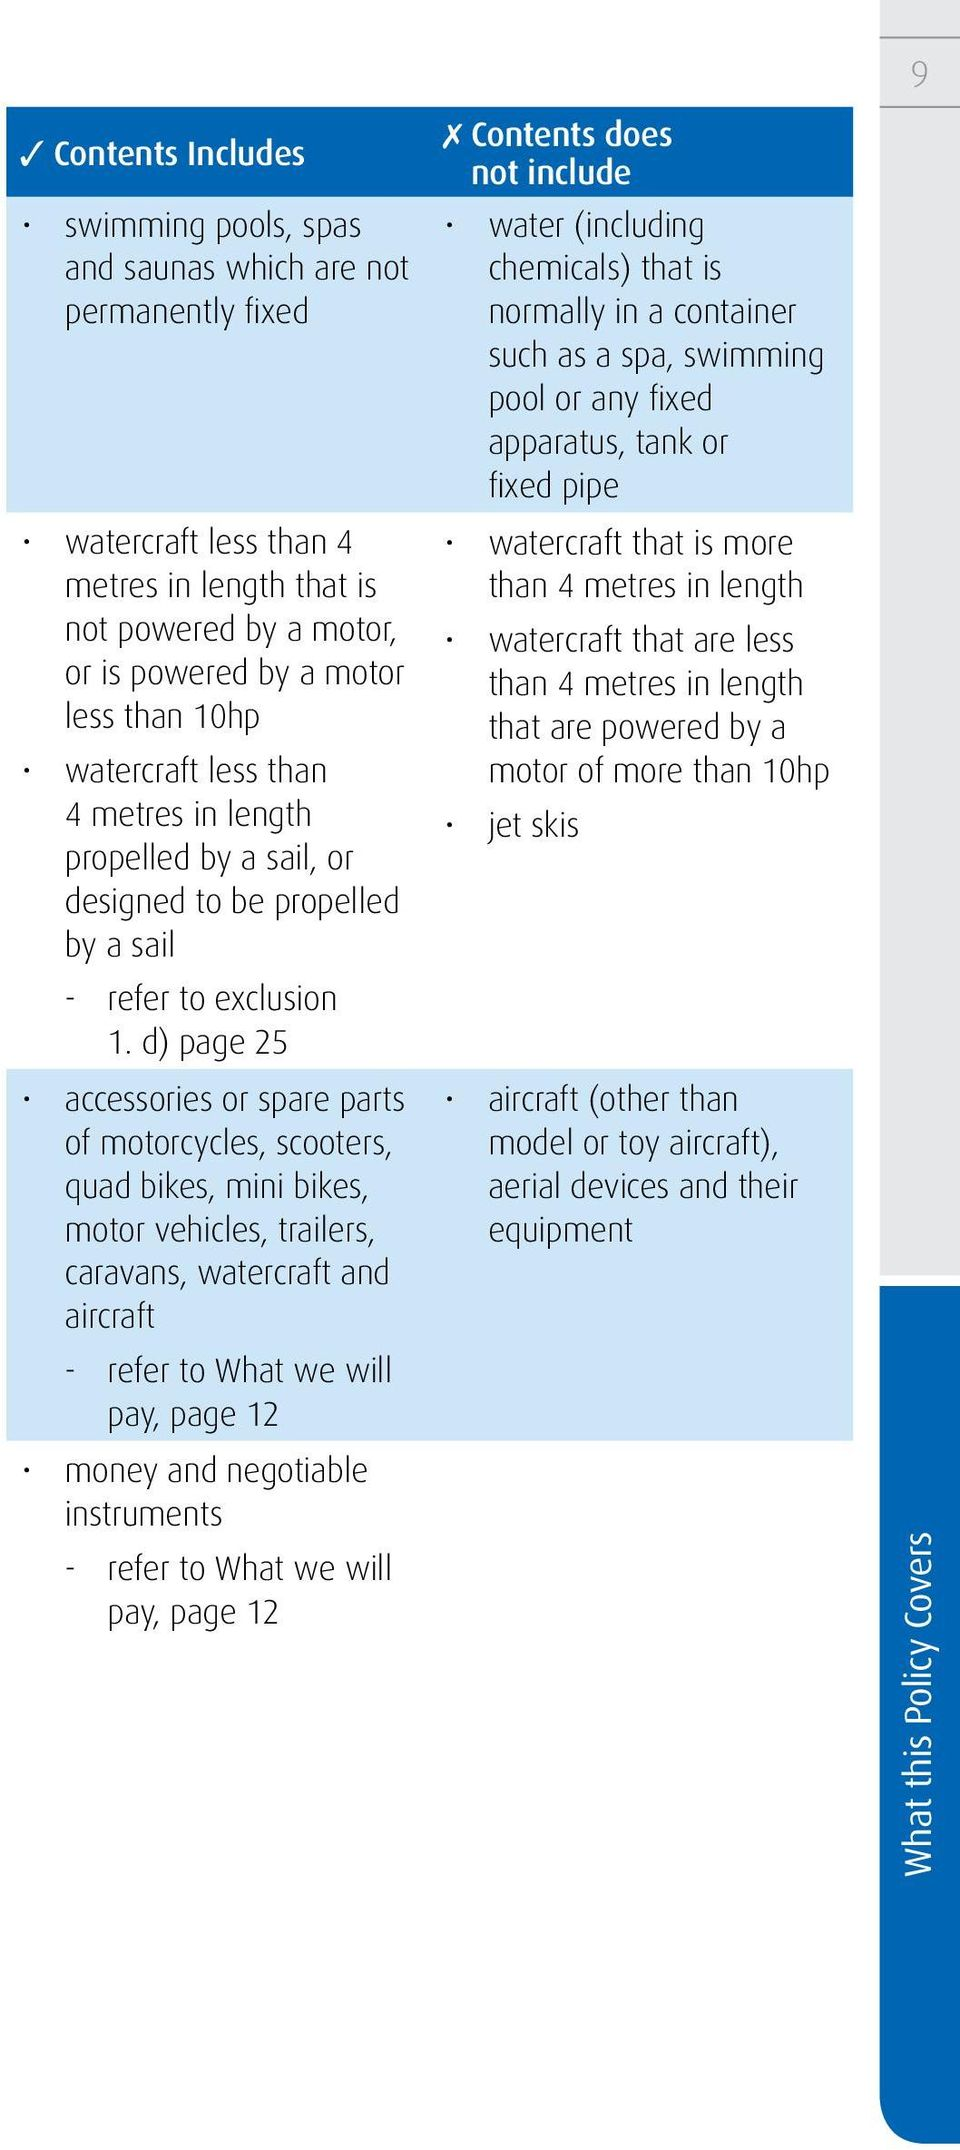 d) page 25 accessories or spare parts of motorcycles, scooters, quad bikes, mini bikes, motor vehicles, trailers, caravans, watercraft and aircraft - refer to What we will pay, page 12 money and